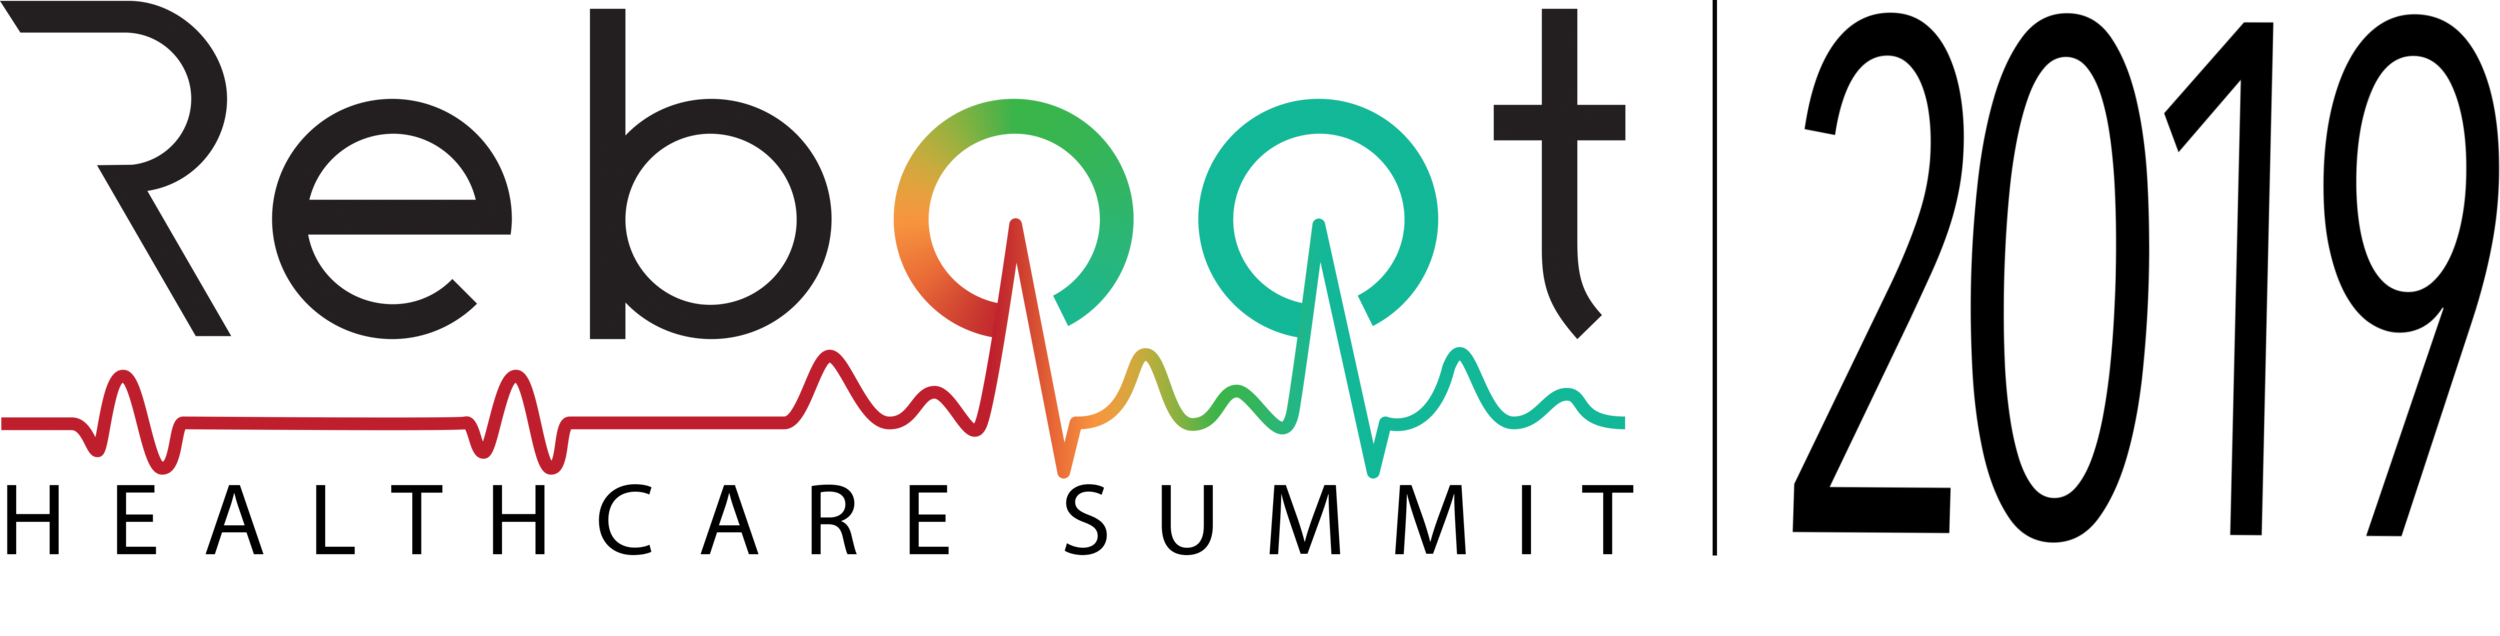 Reboot Healthcare Summit 2019 Transparent Background.png